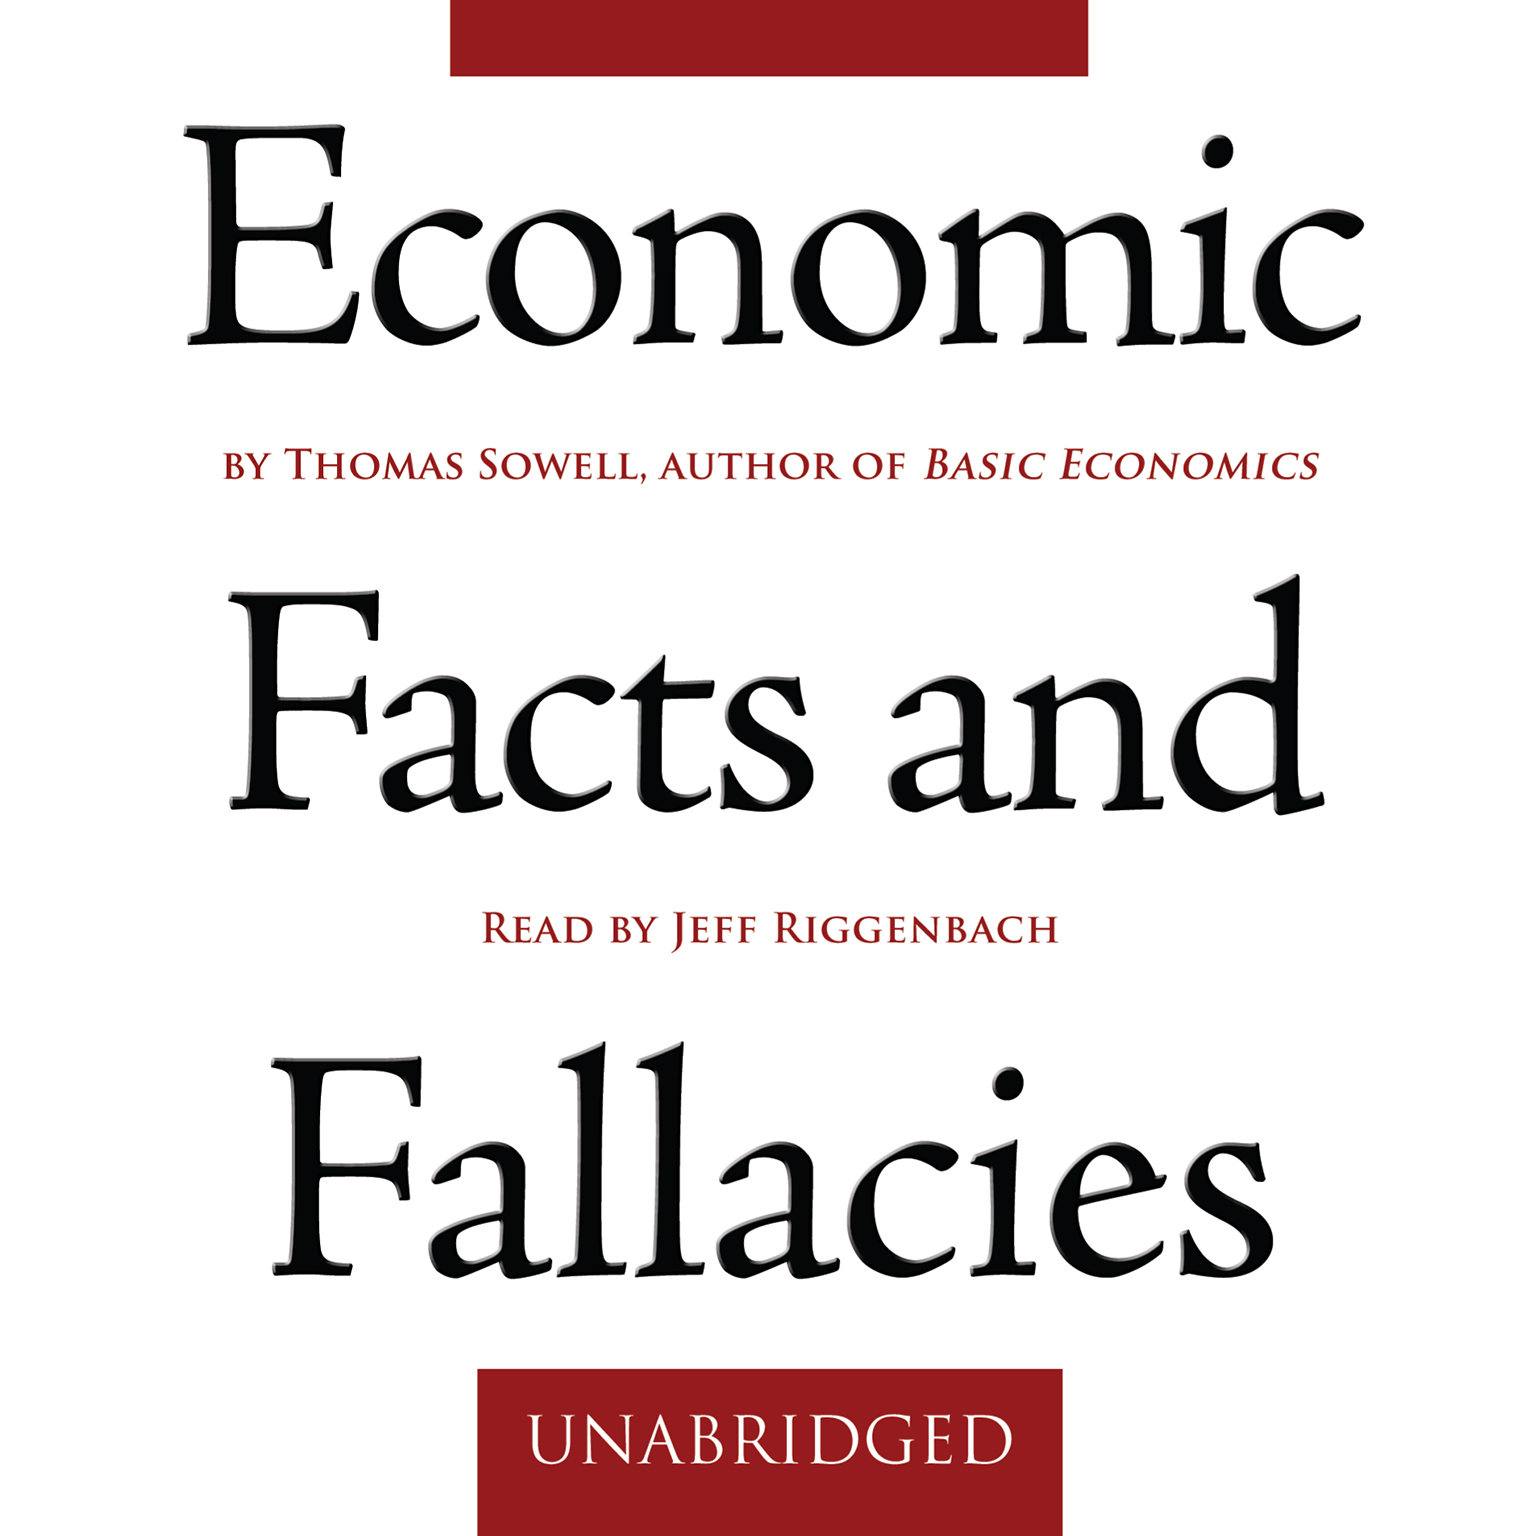 hear economic facts and fallacies audiobook by thomas sowell for extended audio sample economic facts and fallacies audiobook by thomas sowell